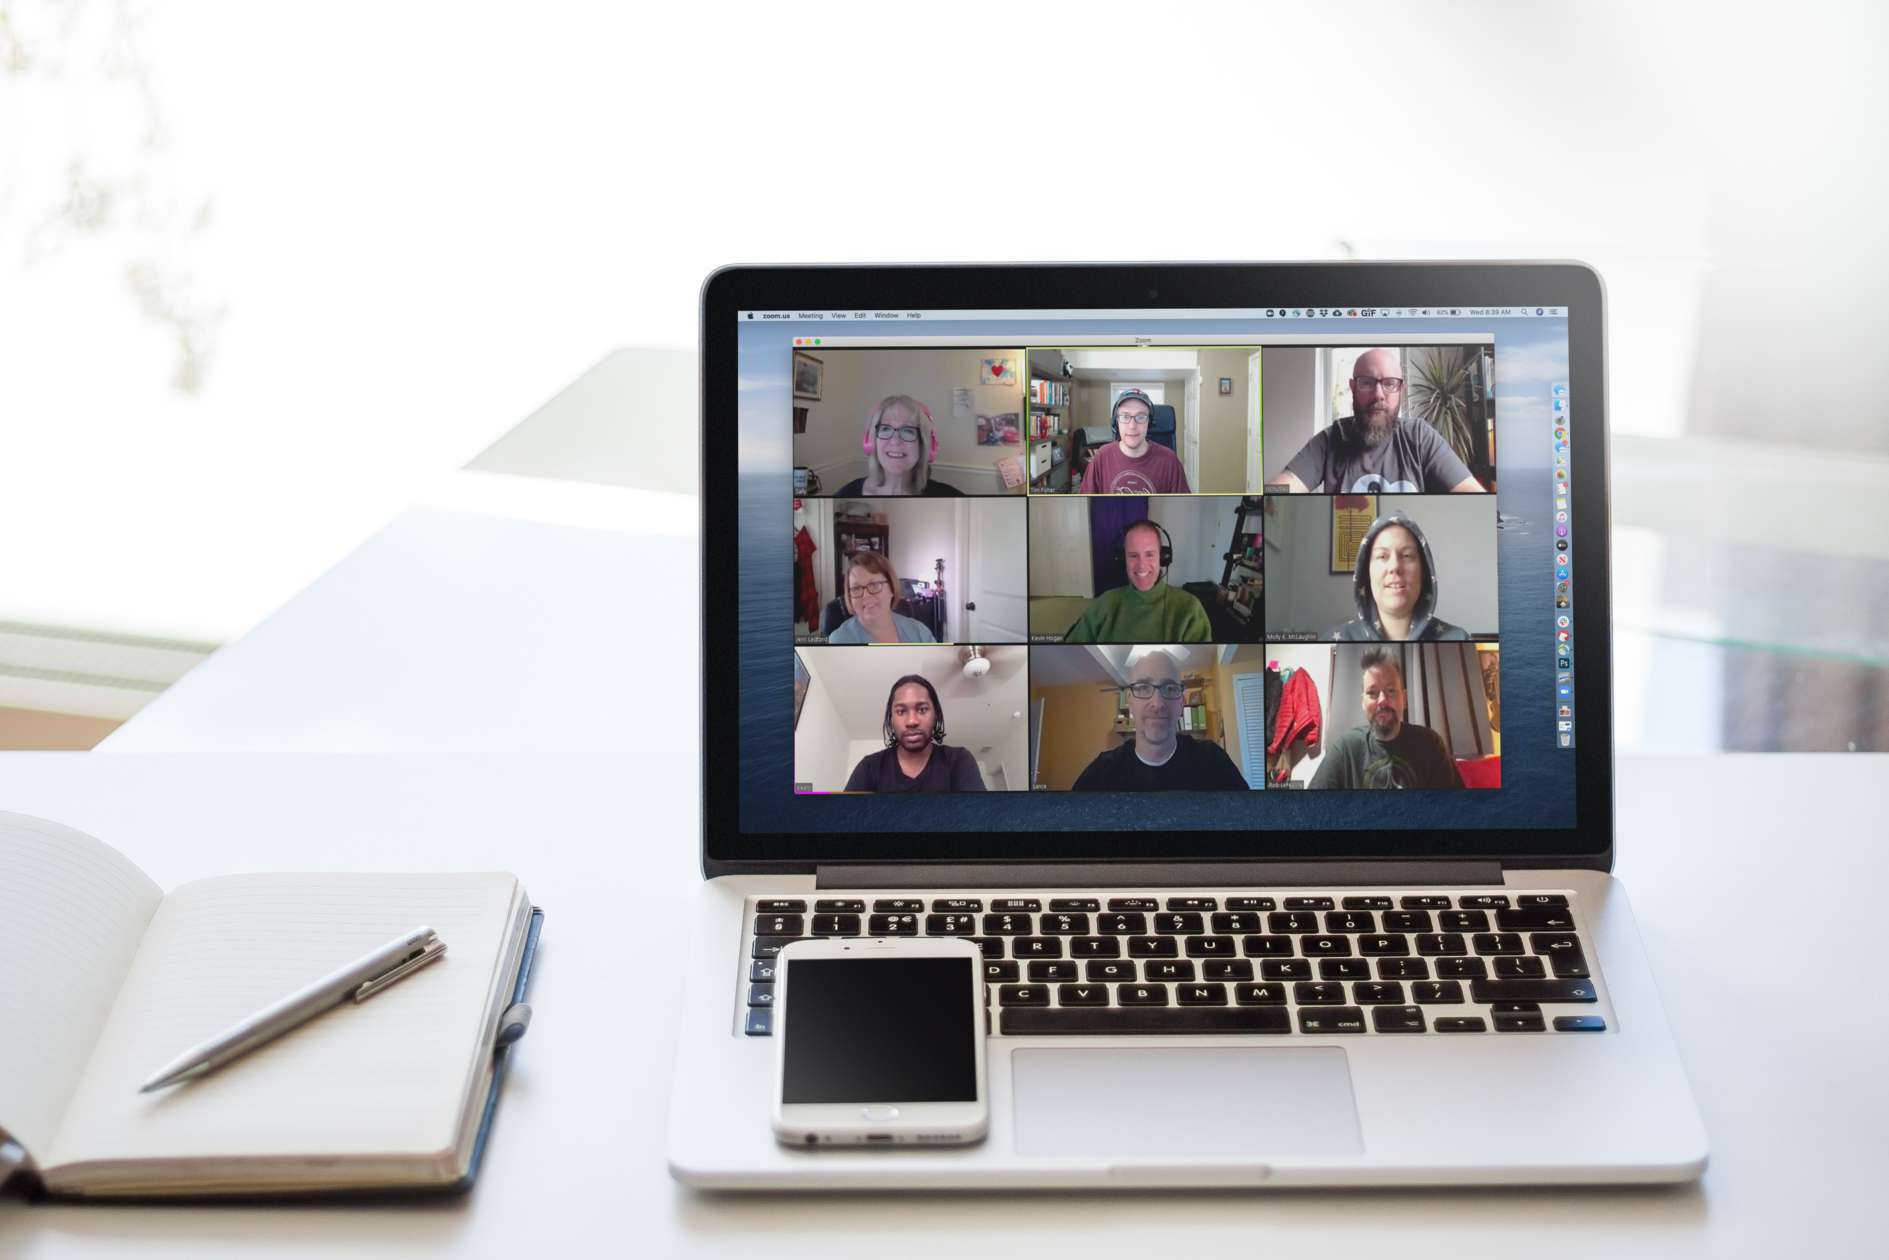 Zoom video conference on Macbook Pro